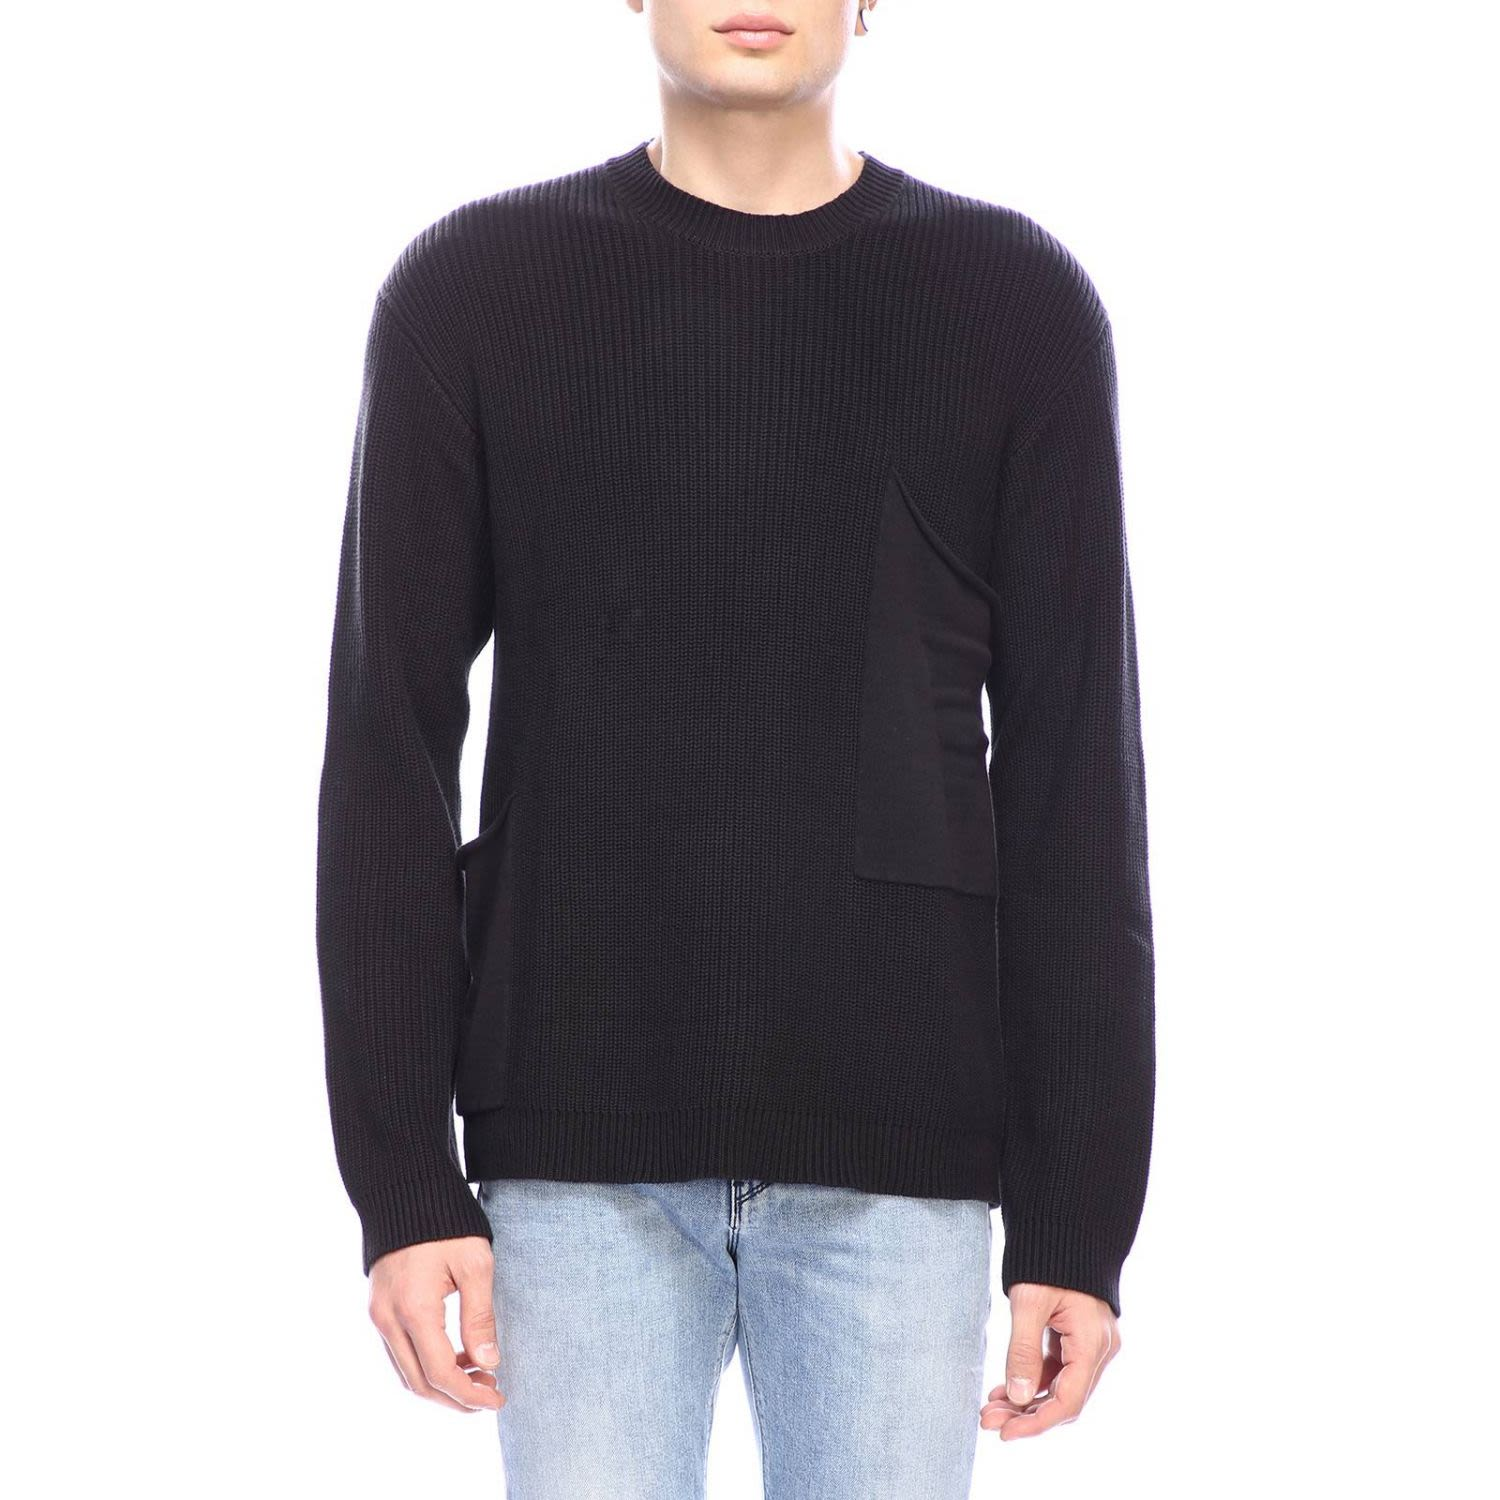 Rta Sweater Sweater Men Rta